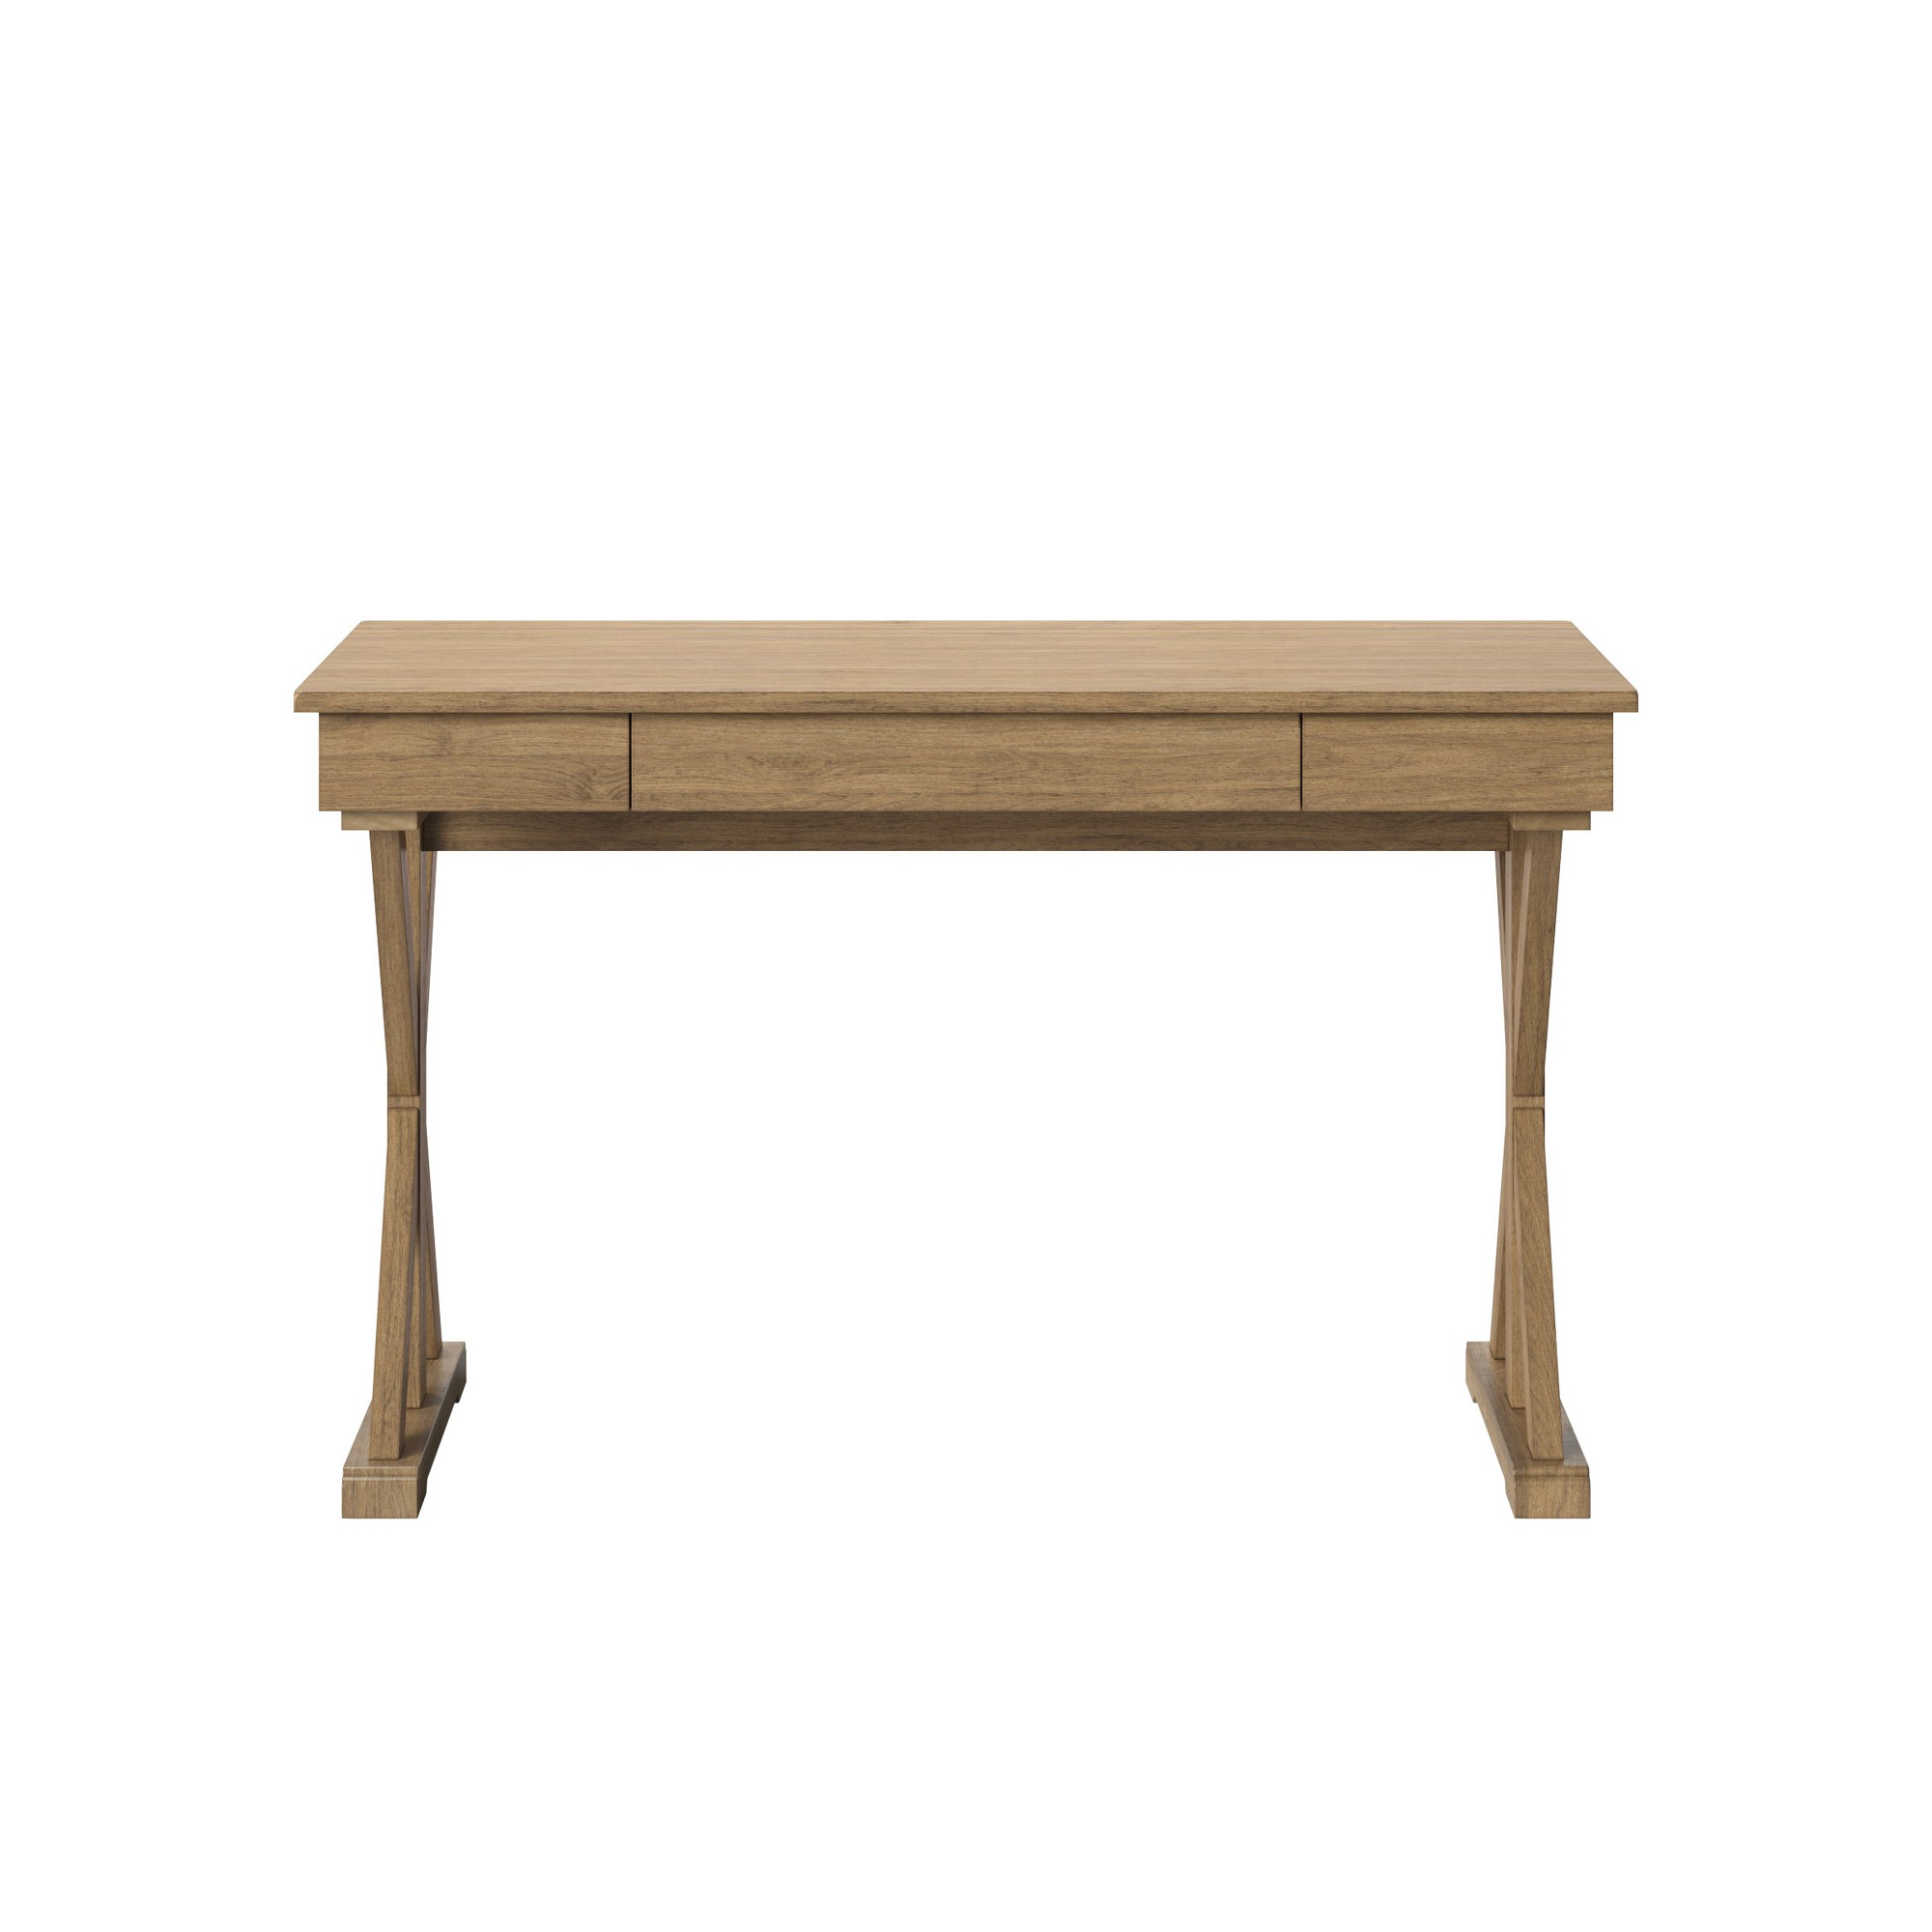 Litchfield Farmhouse Writing Desk Wheat - Threshold - Target